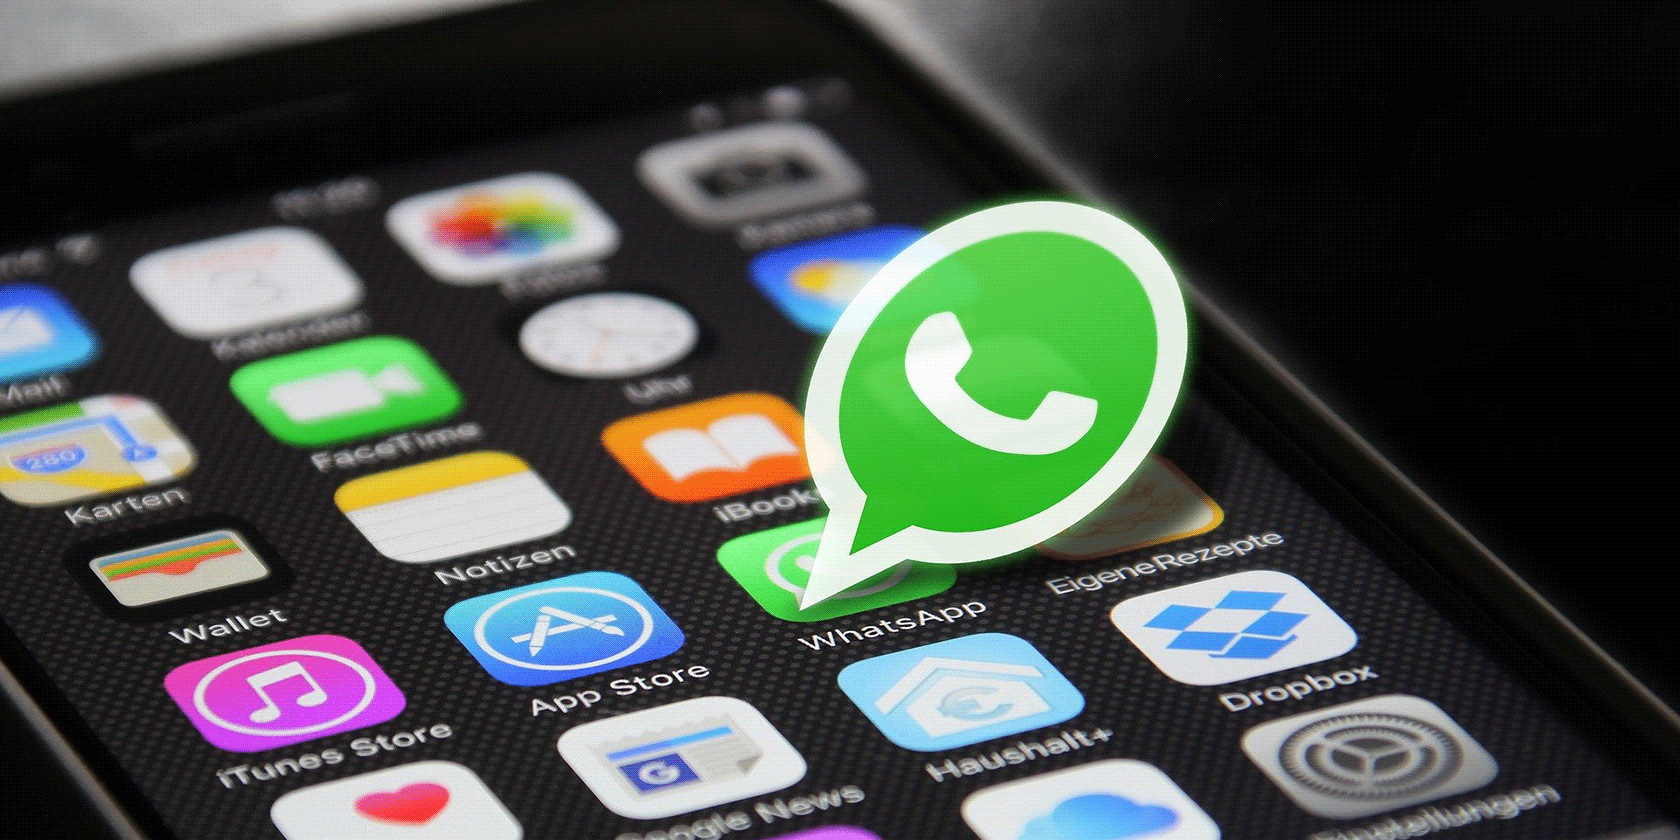 You Will Soon Be Able to Self-Destruct Images in WhatsApp